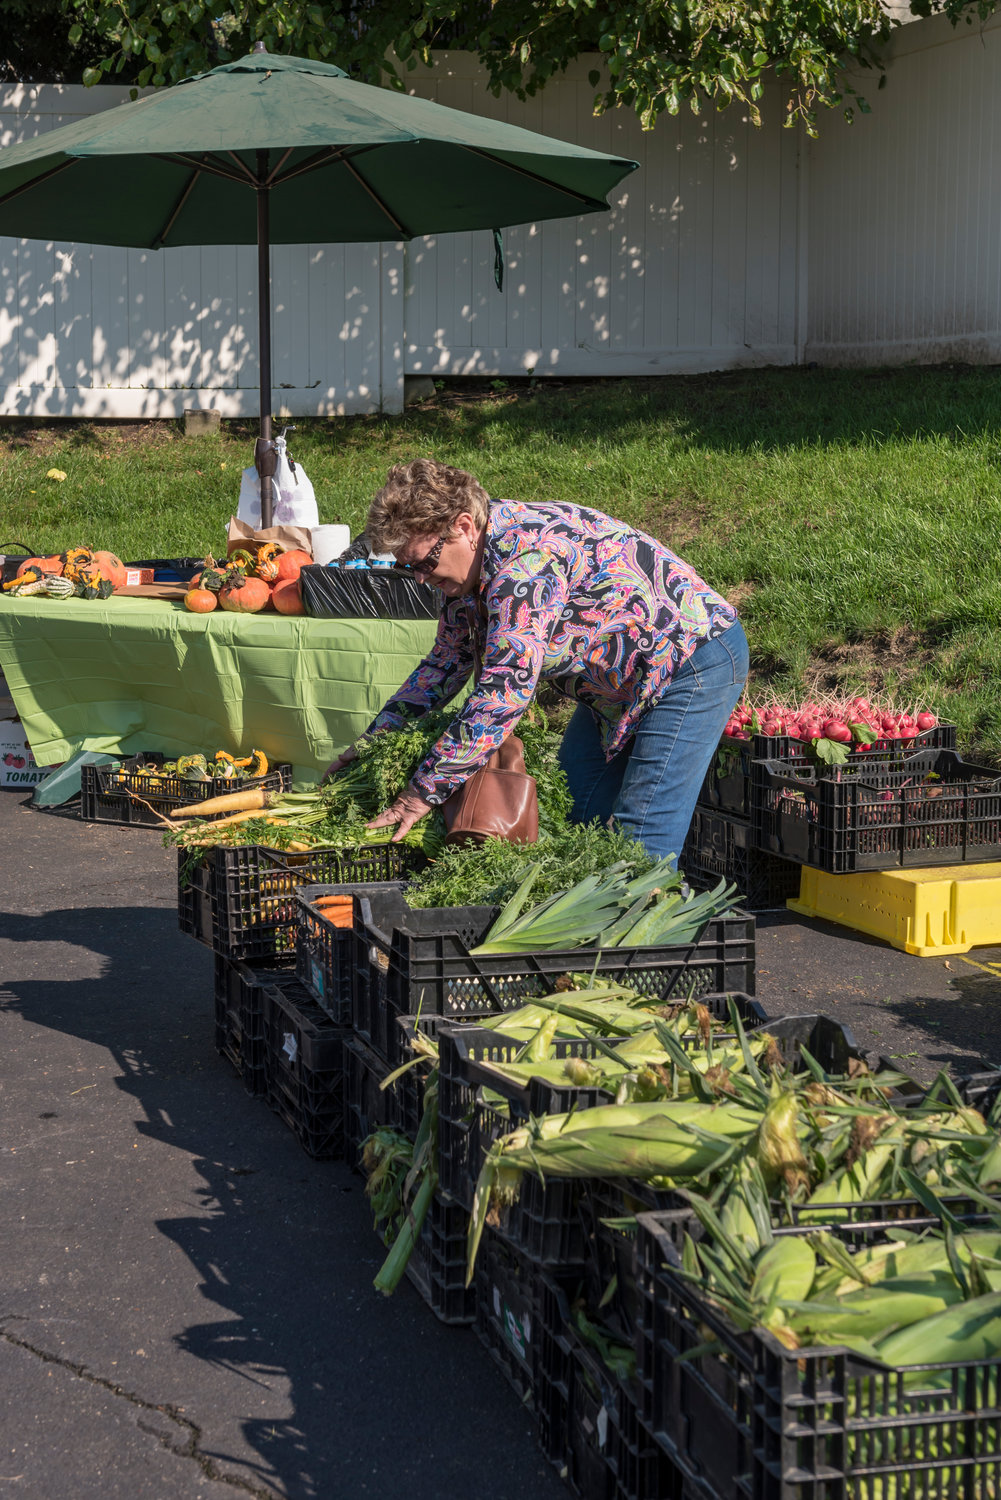 Irena Debiec neatly arranged corn, carrots and other locally grown produce before buyers came to market.